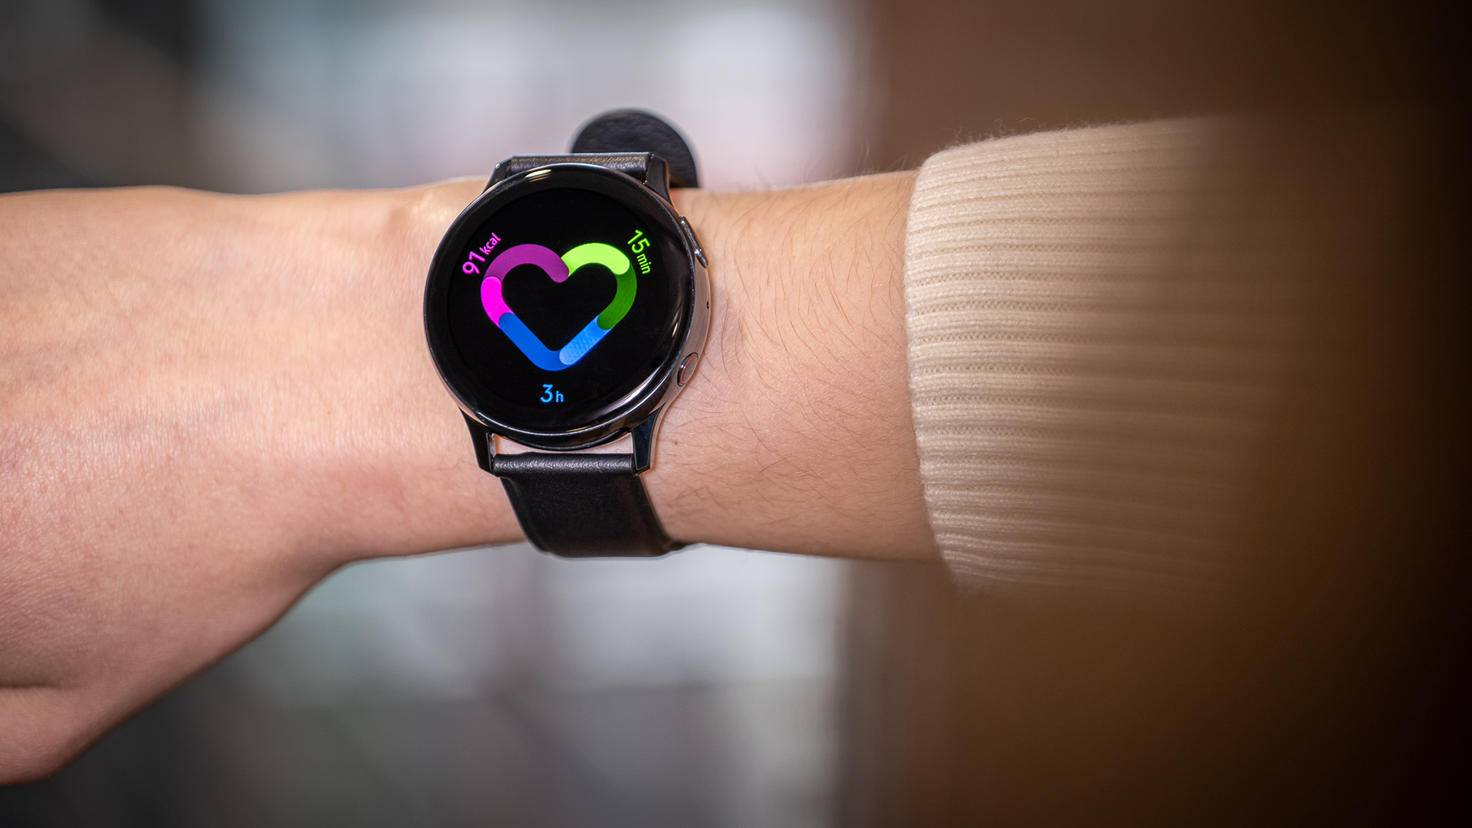 Samsung Galaxy Watch Active 2: Fitness overview